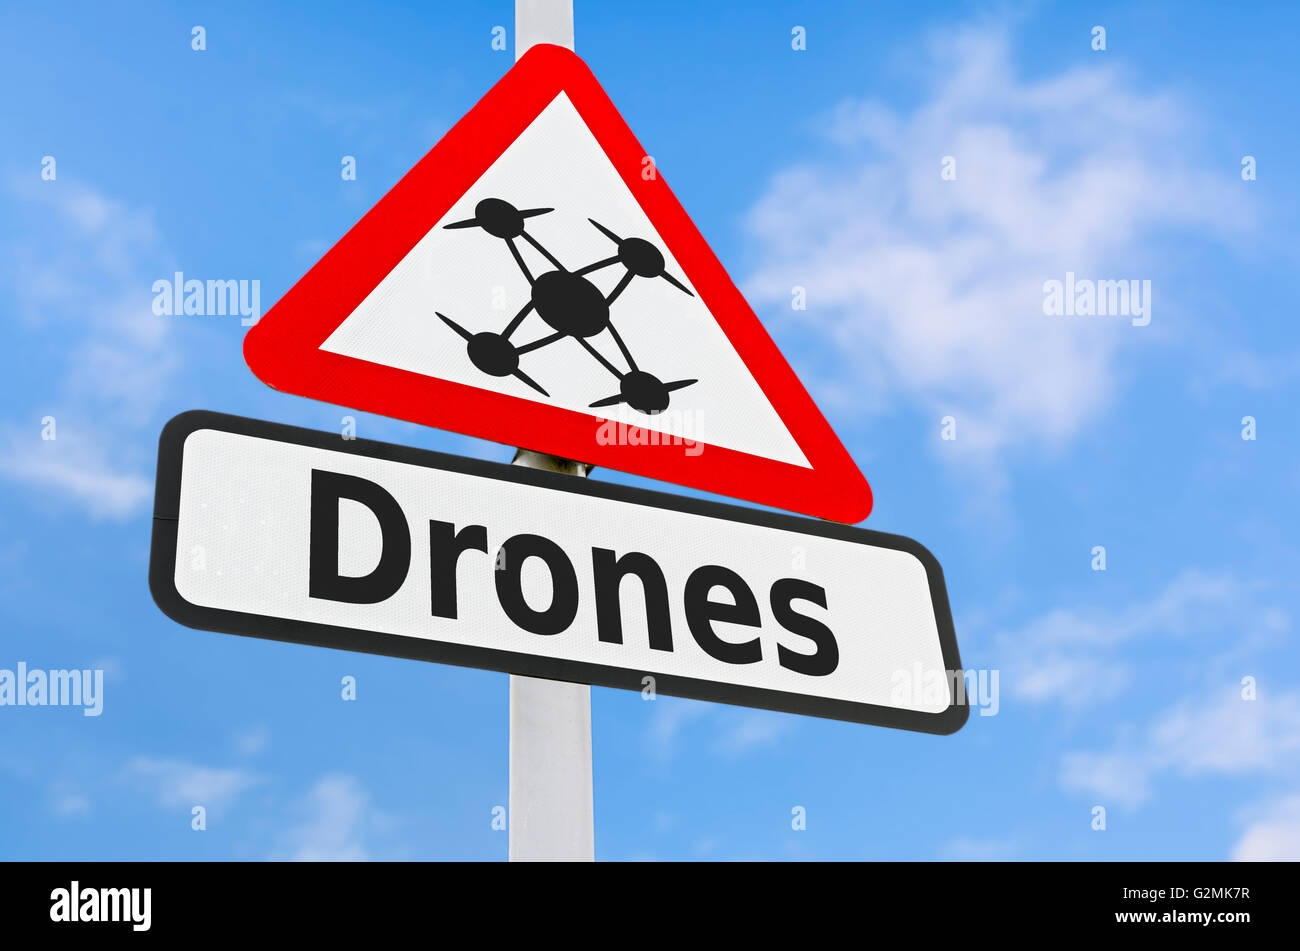 Drones triangular warning sign against blue sky. - Stock Image